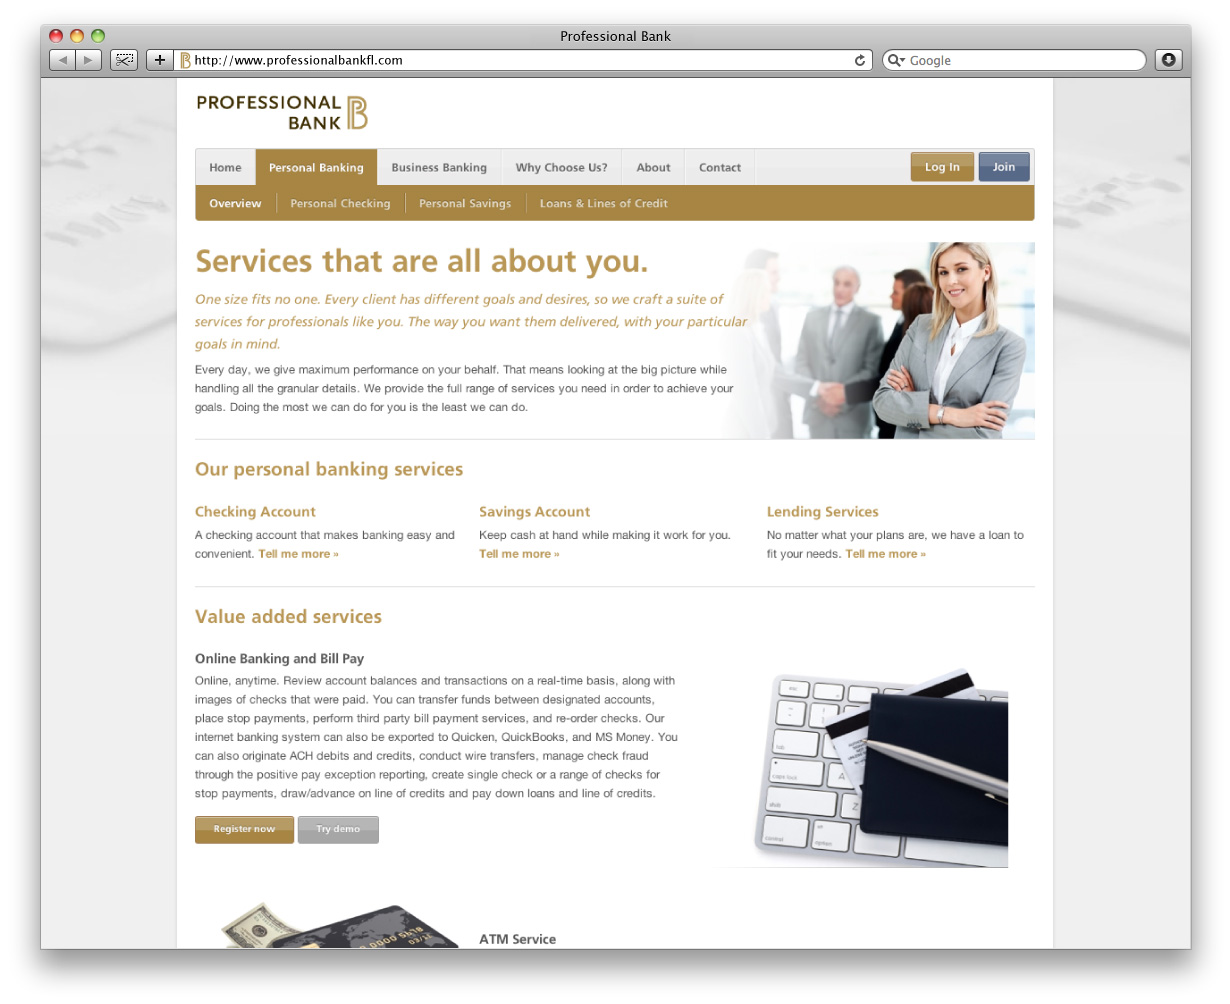 Professional Bank Website Interior